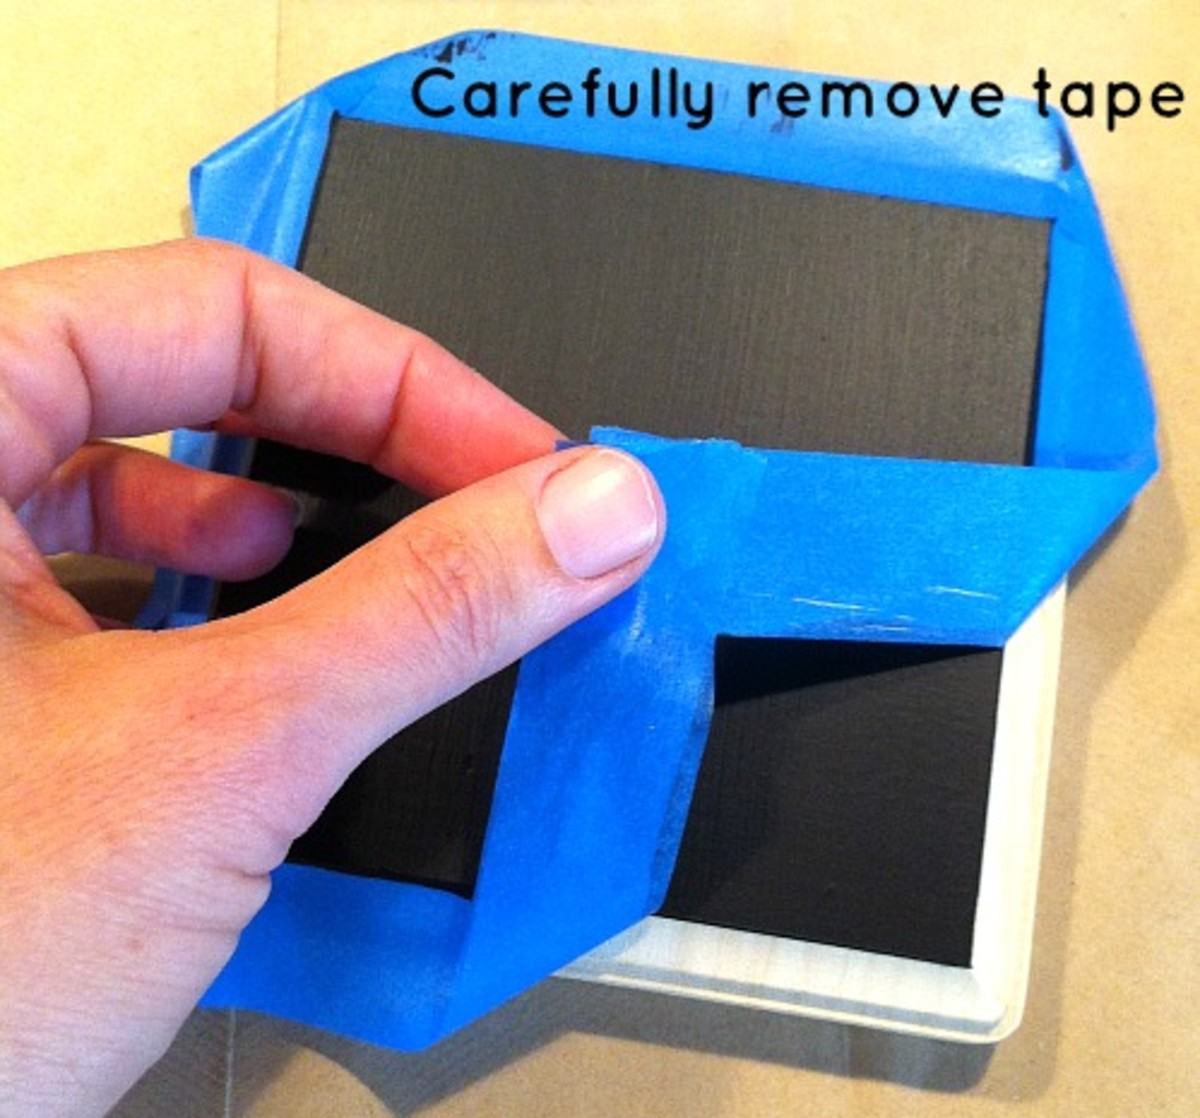 Carefully Remove Tape